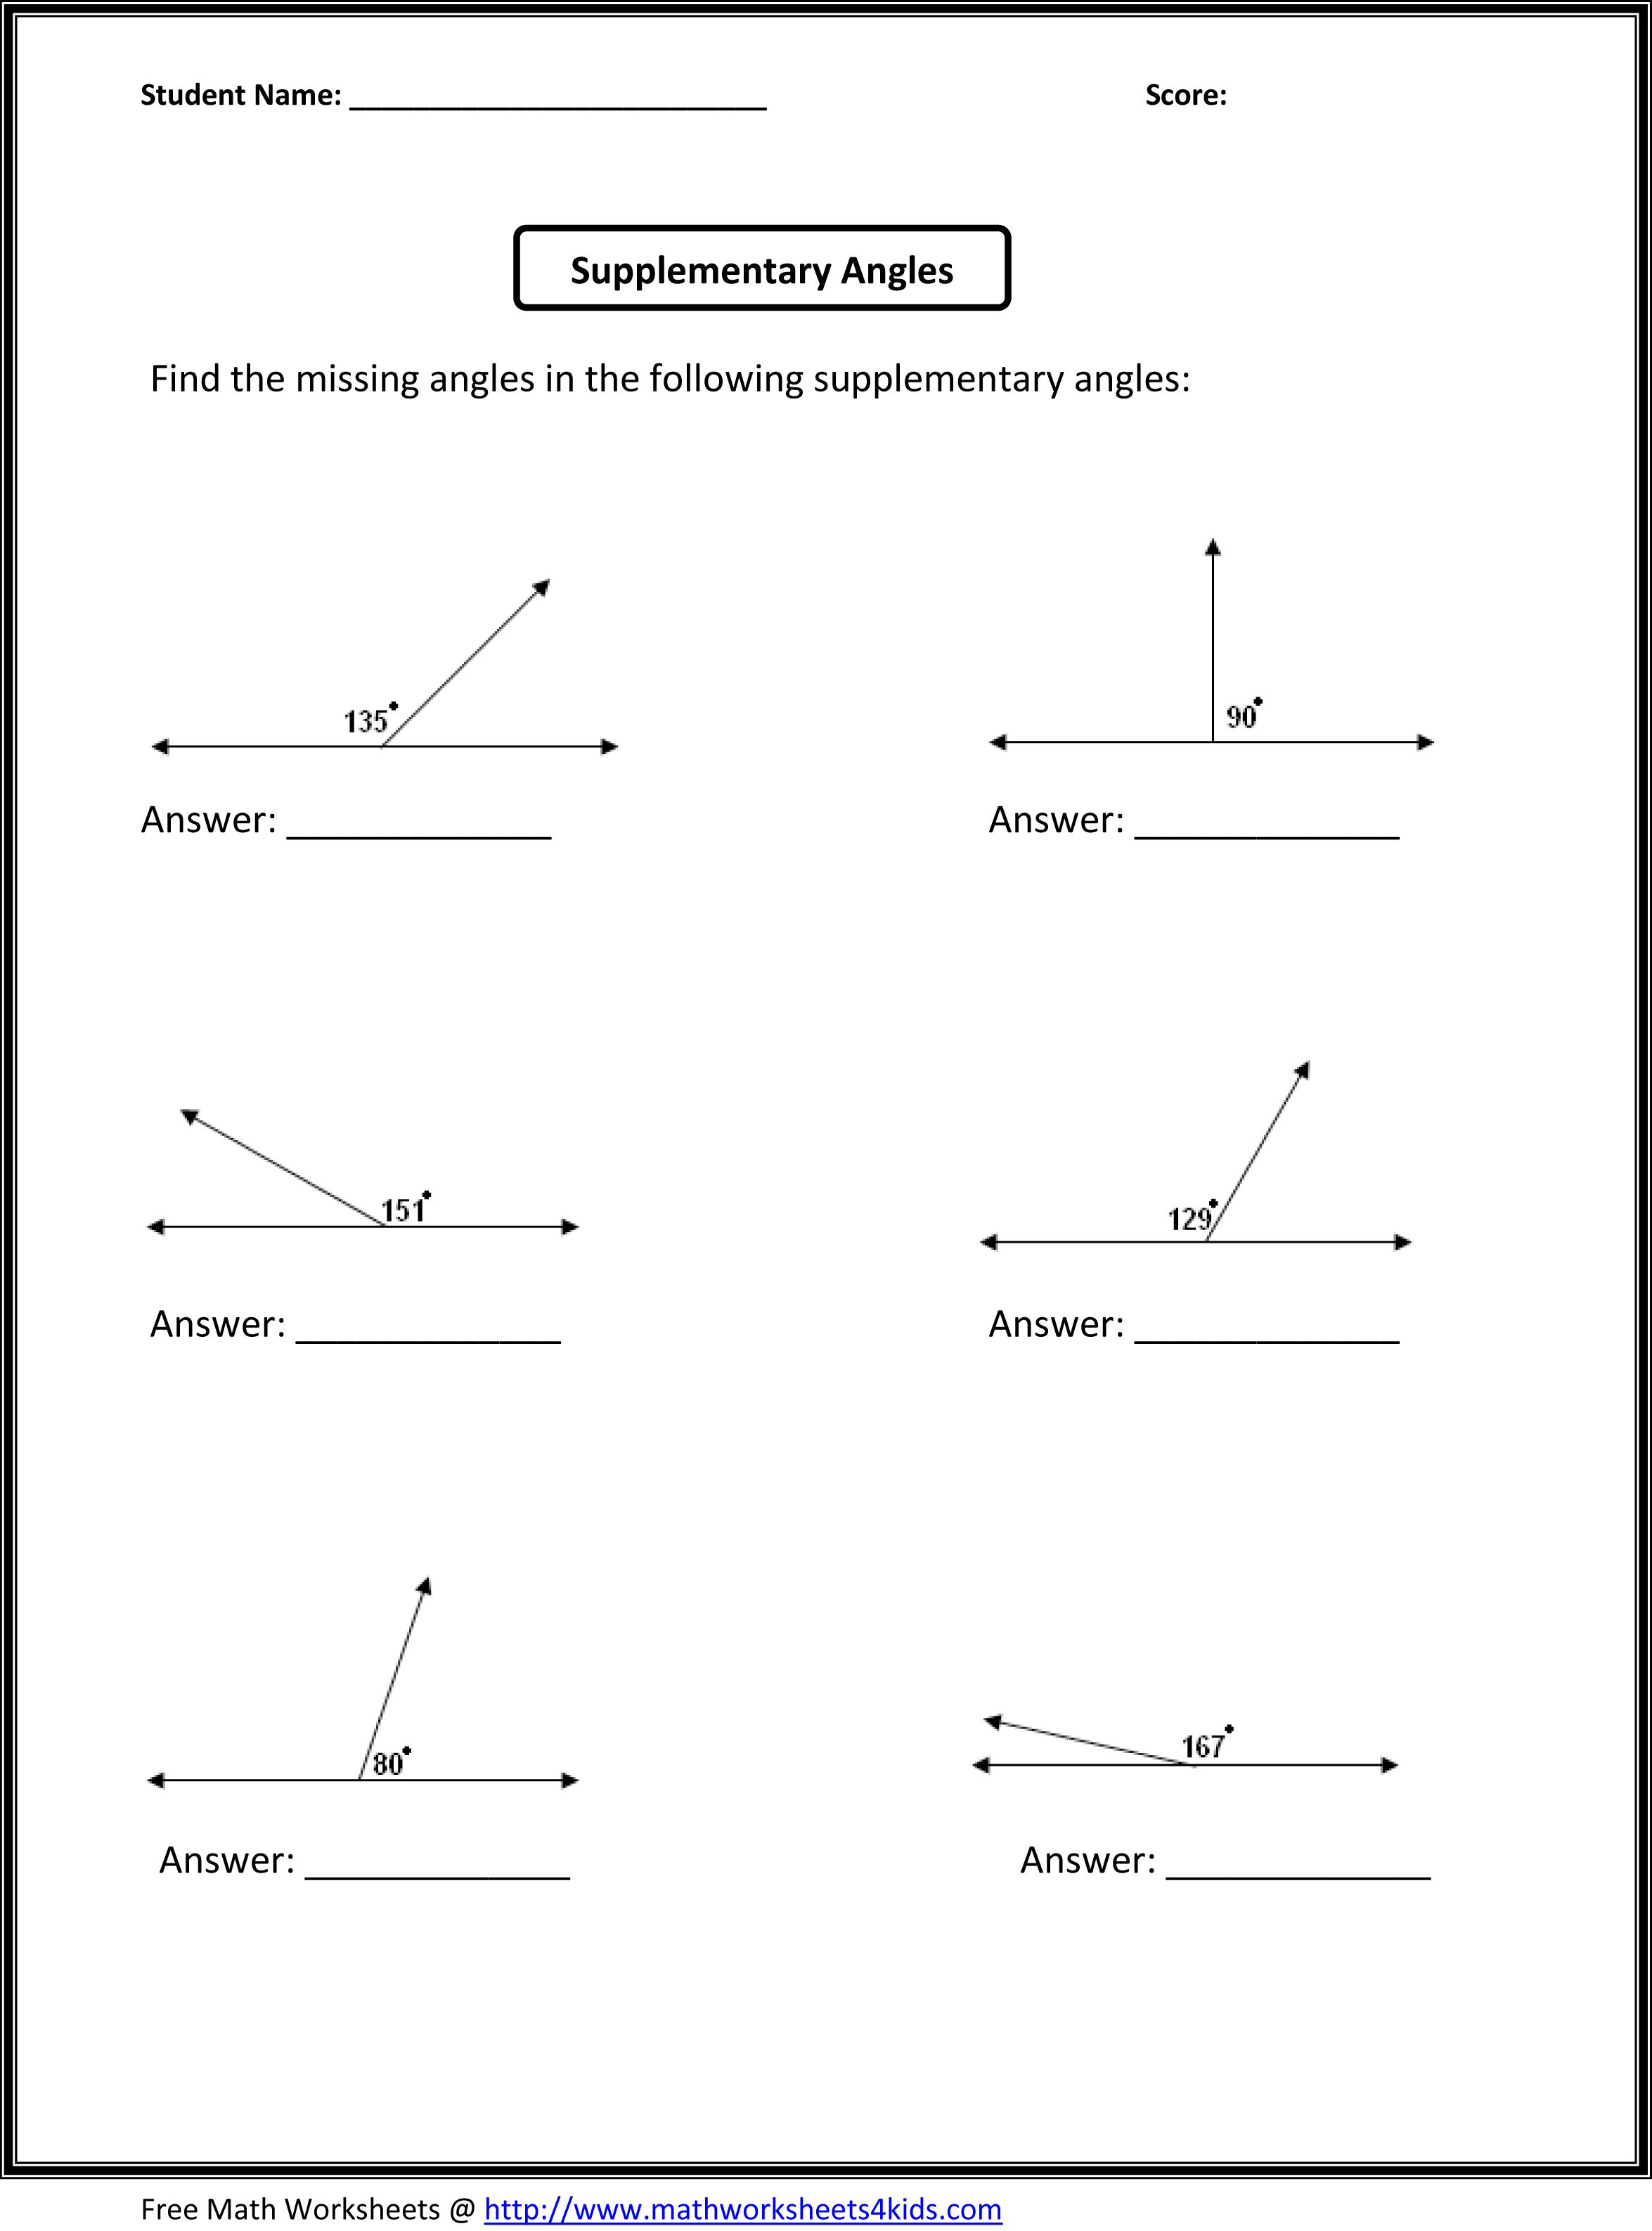 math worksheet : 1000 images about math worksheets on pinterest  addition  : Free Math Worksheets For 8th Grade